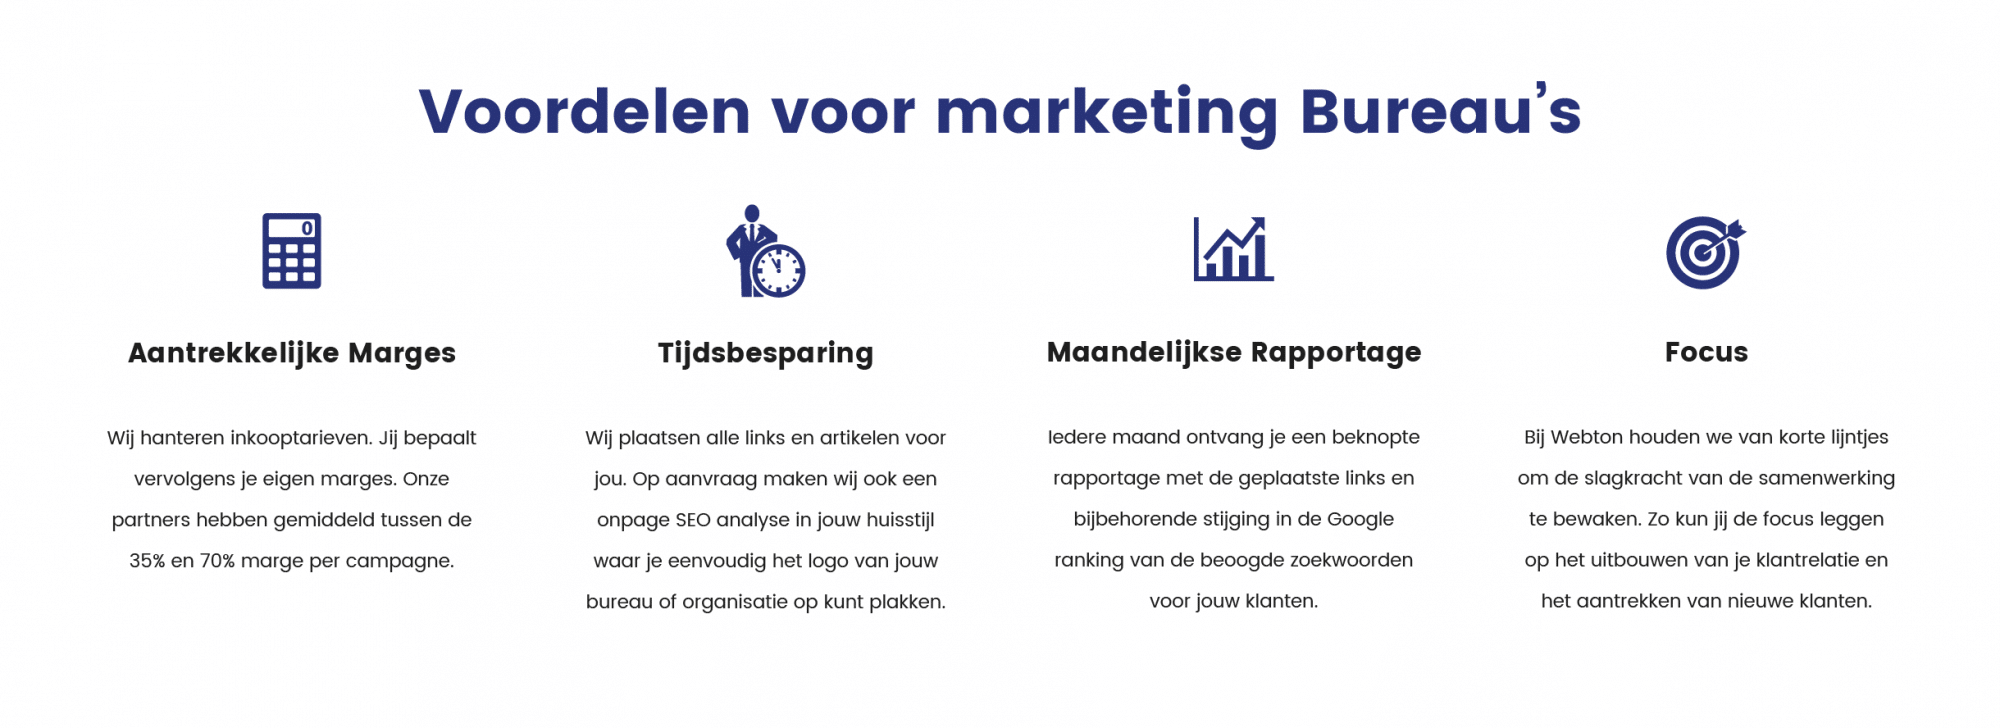 voordelen marketing bureaus